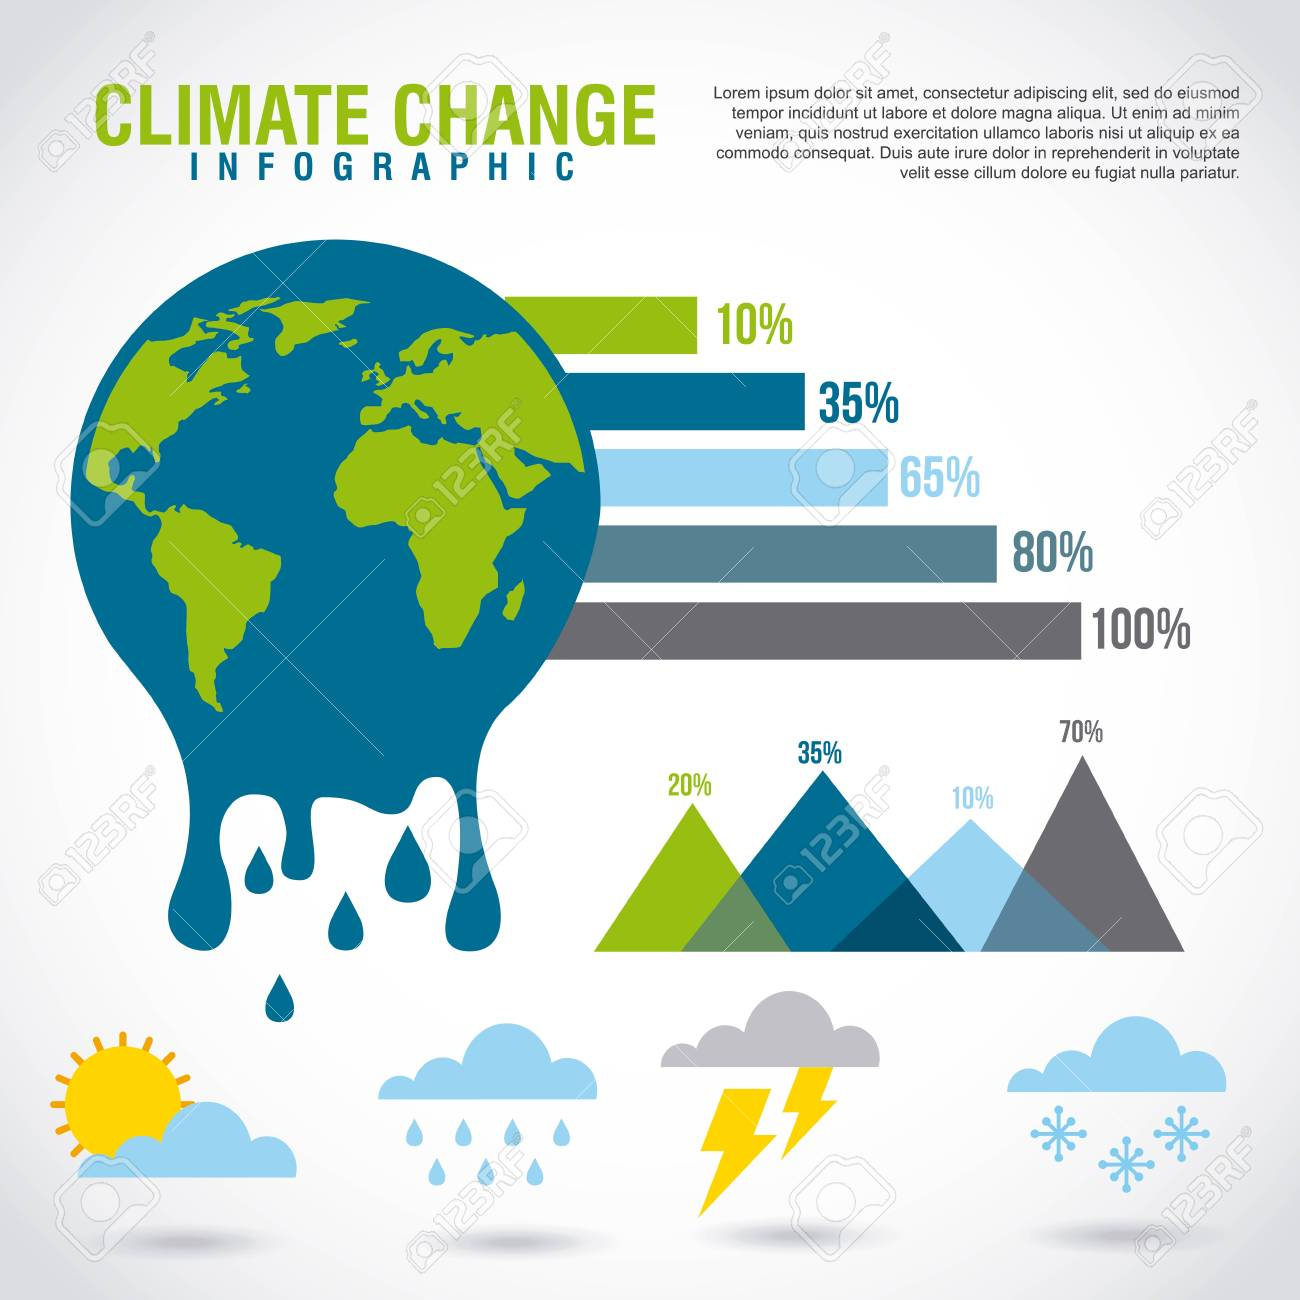 climate change infographic melted planet graphic chart vector illustration - 95908450